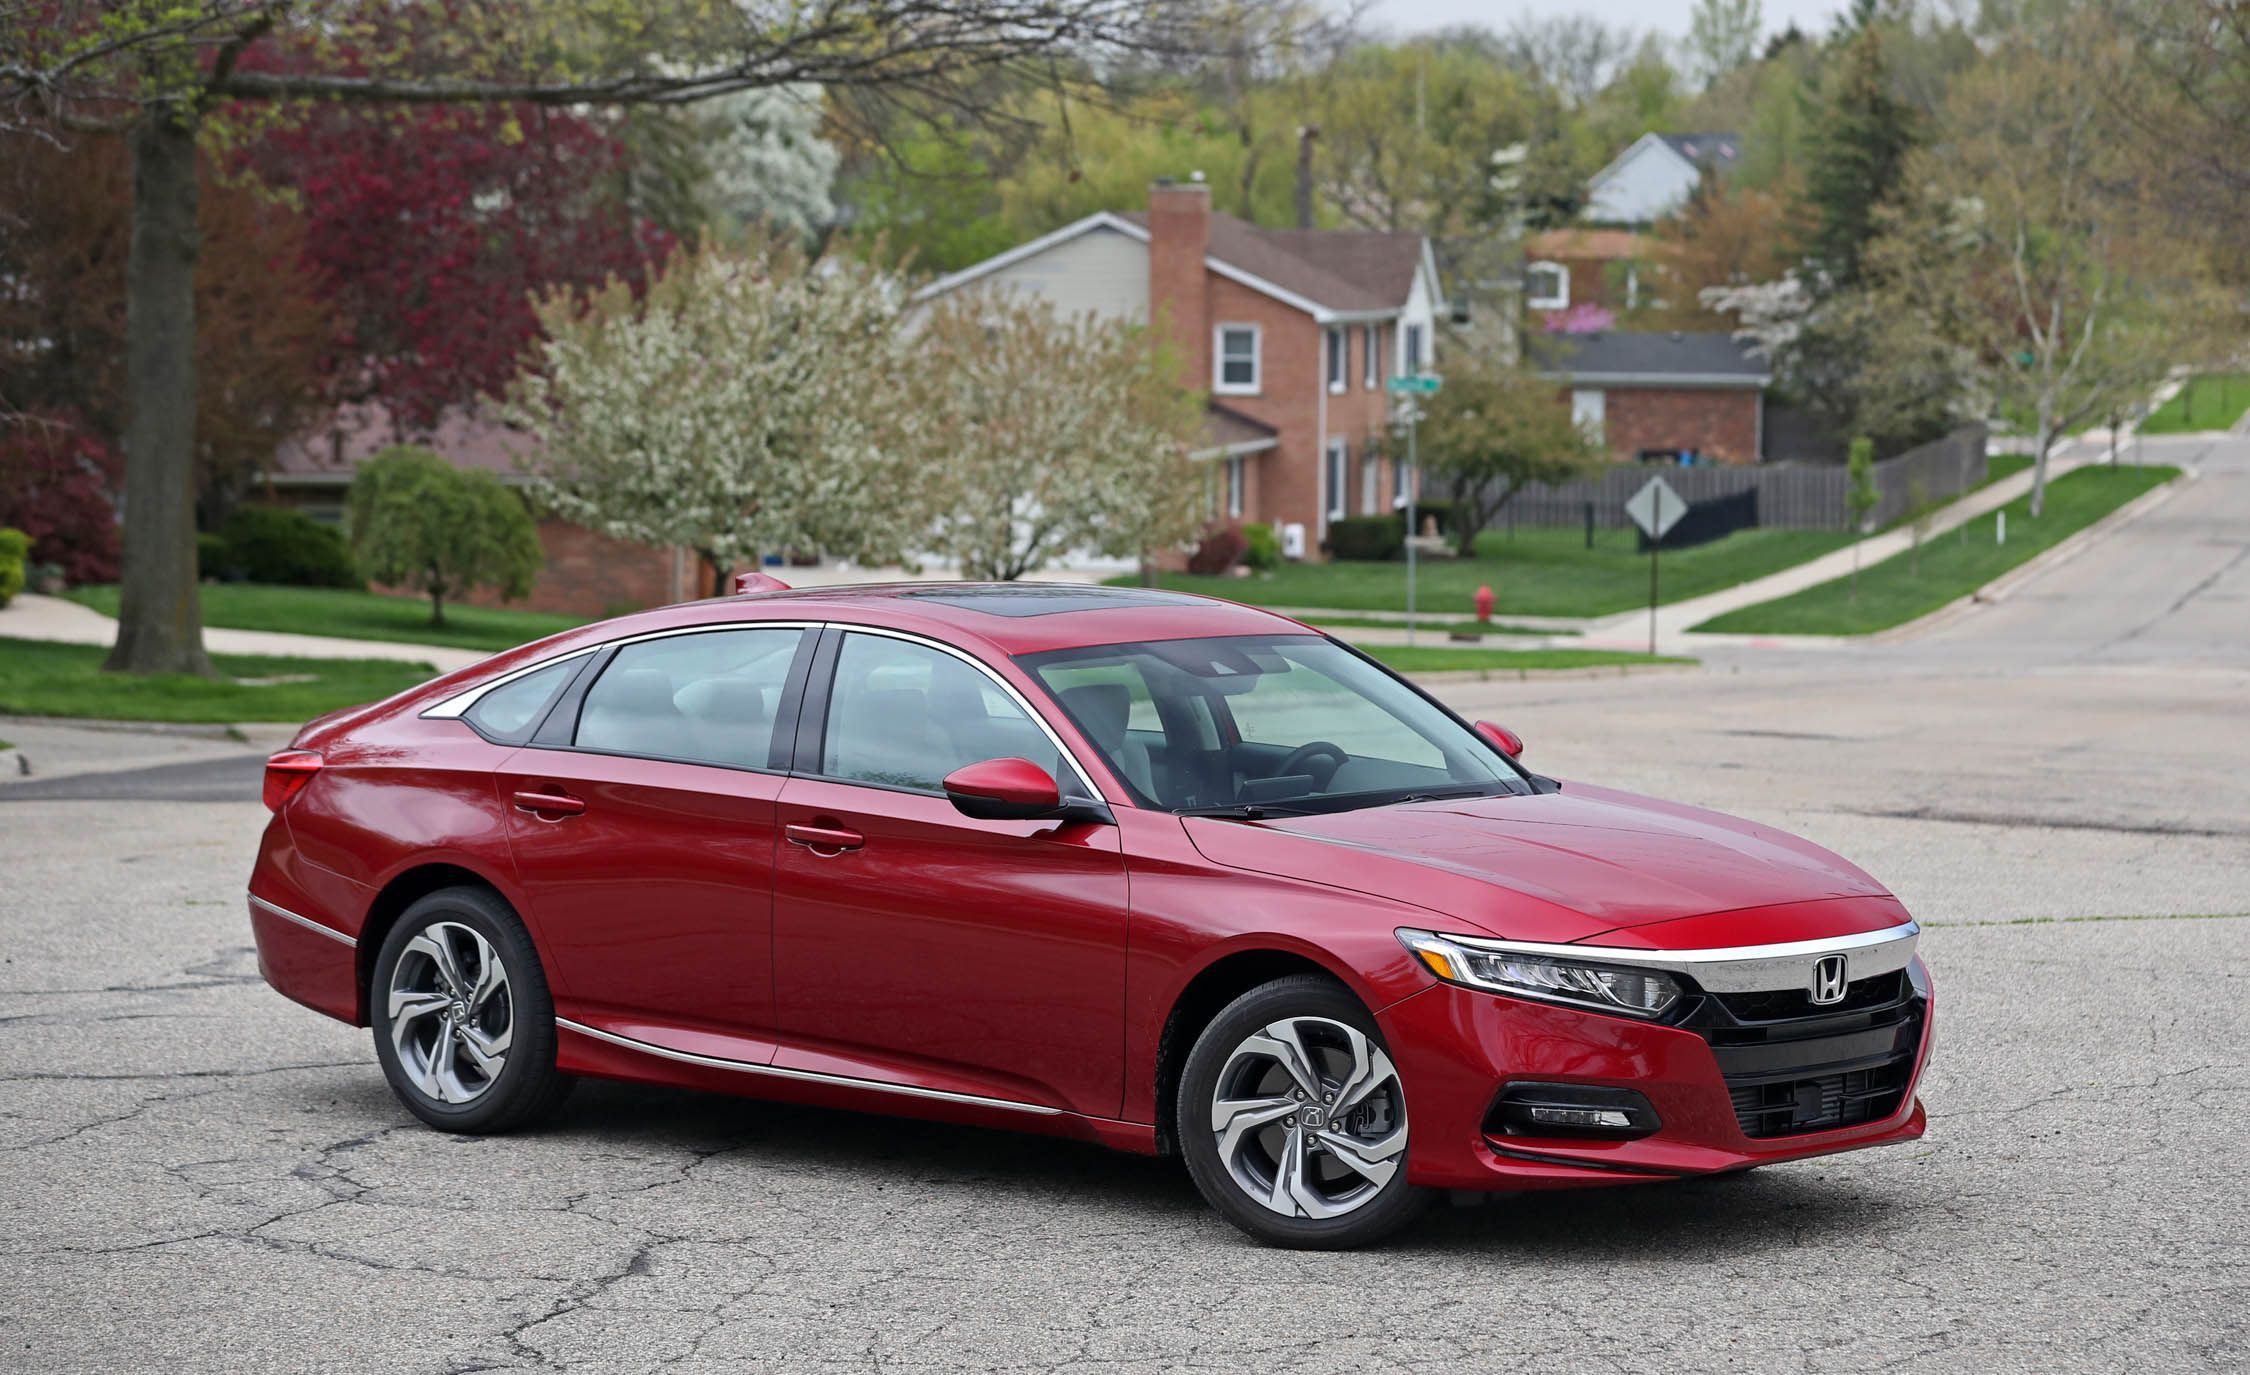 2021 honda accord release date, changes, features, interior